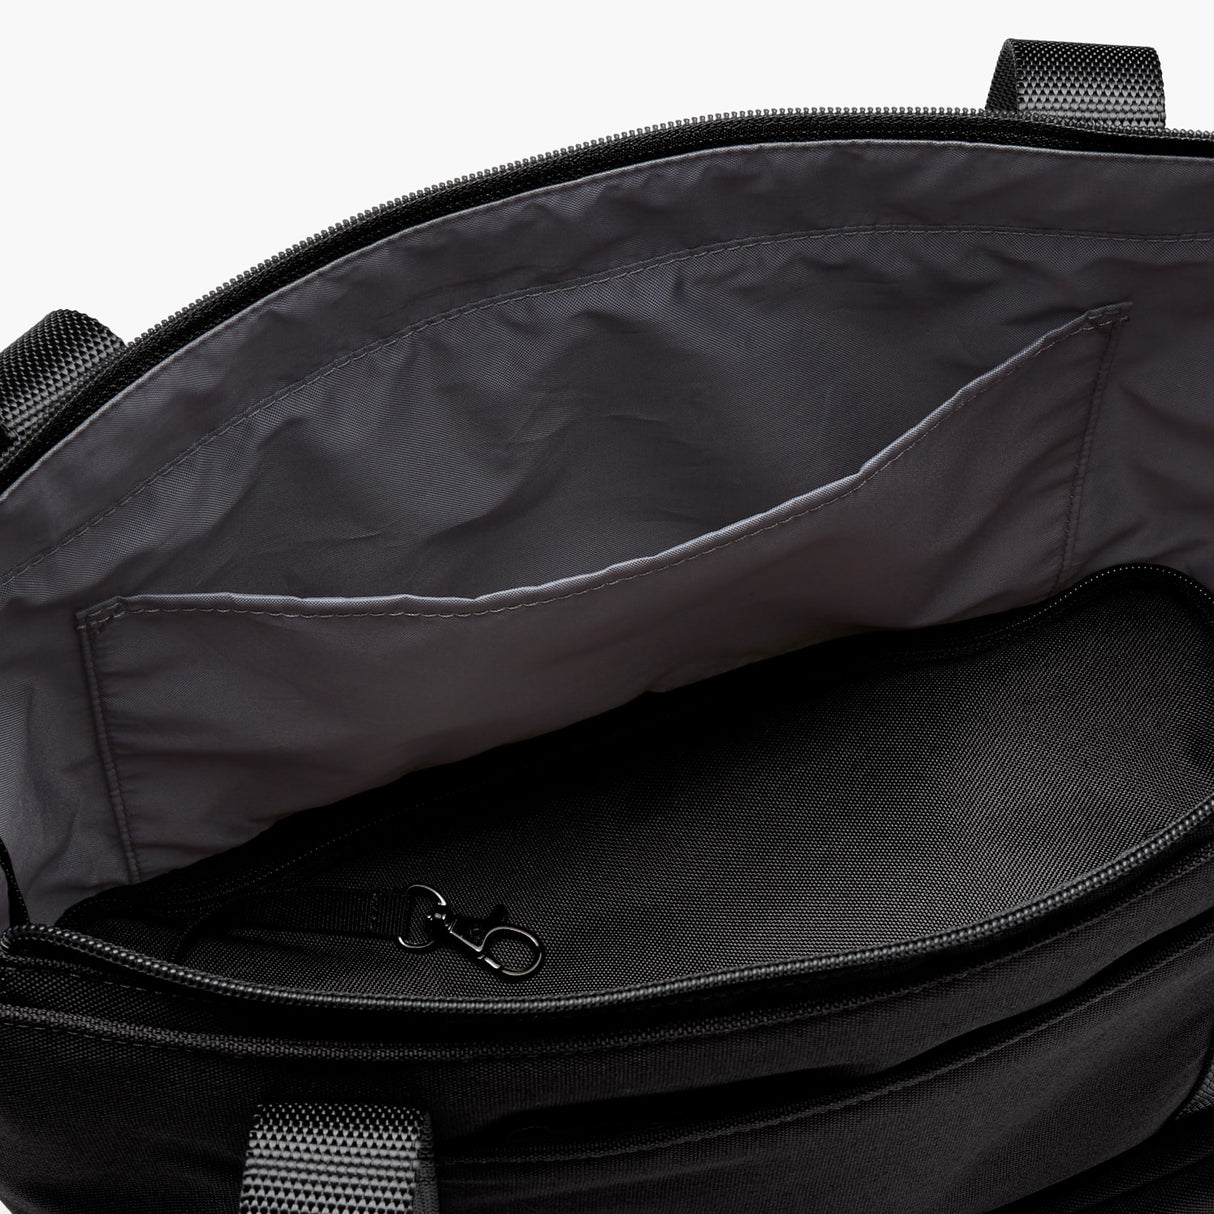 Interior Zipper Pocket - Catalina Day Tote - 600D Recycled Poly - Onyx - Tote - Lo & Sons